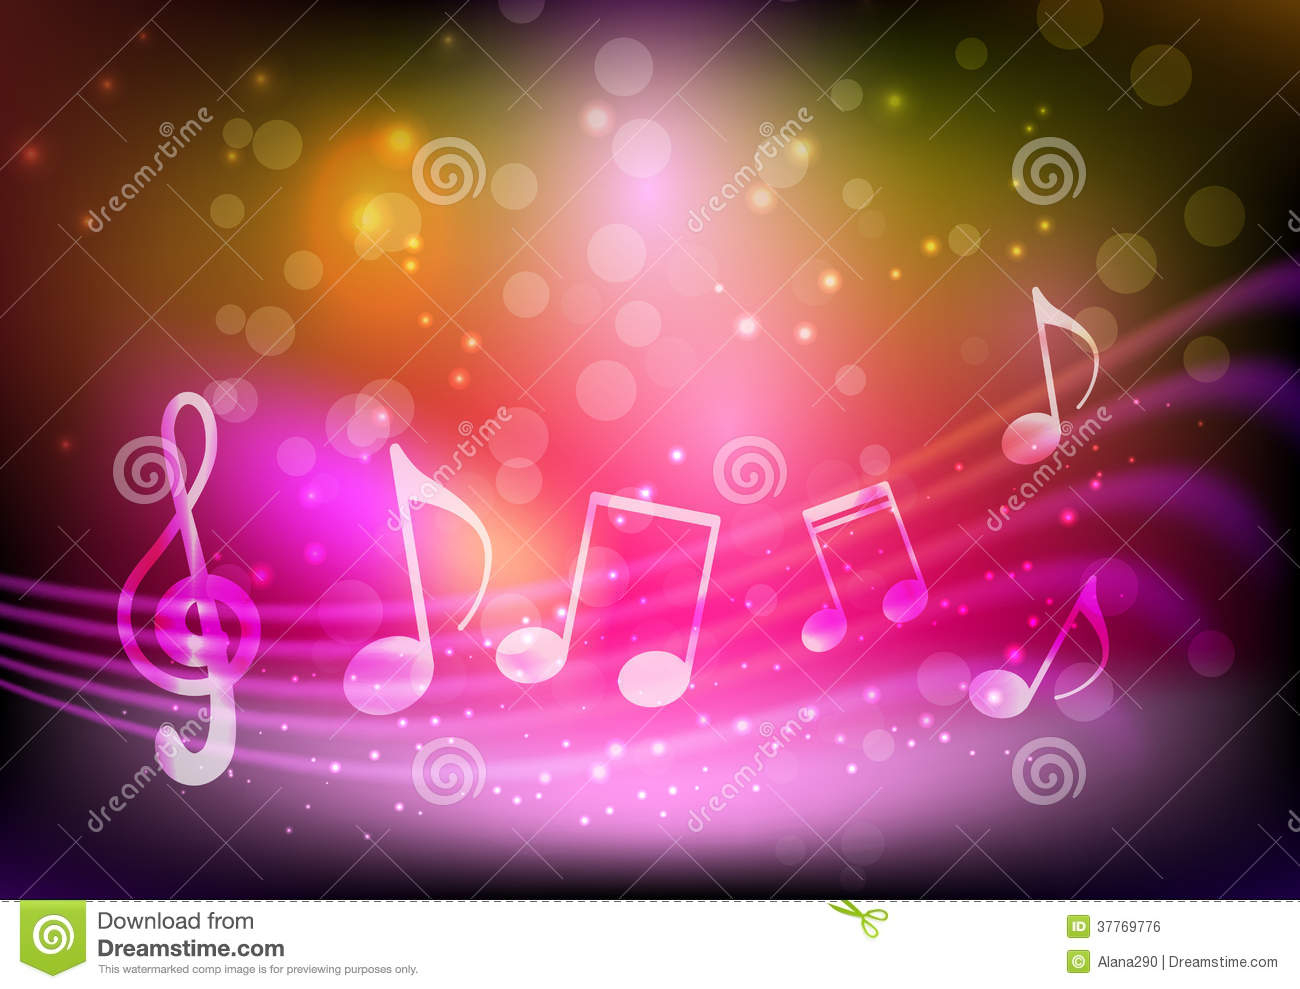 Pink Music Wallpaper: Pink Music Background Stock Vector. Image Of Glowing